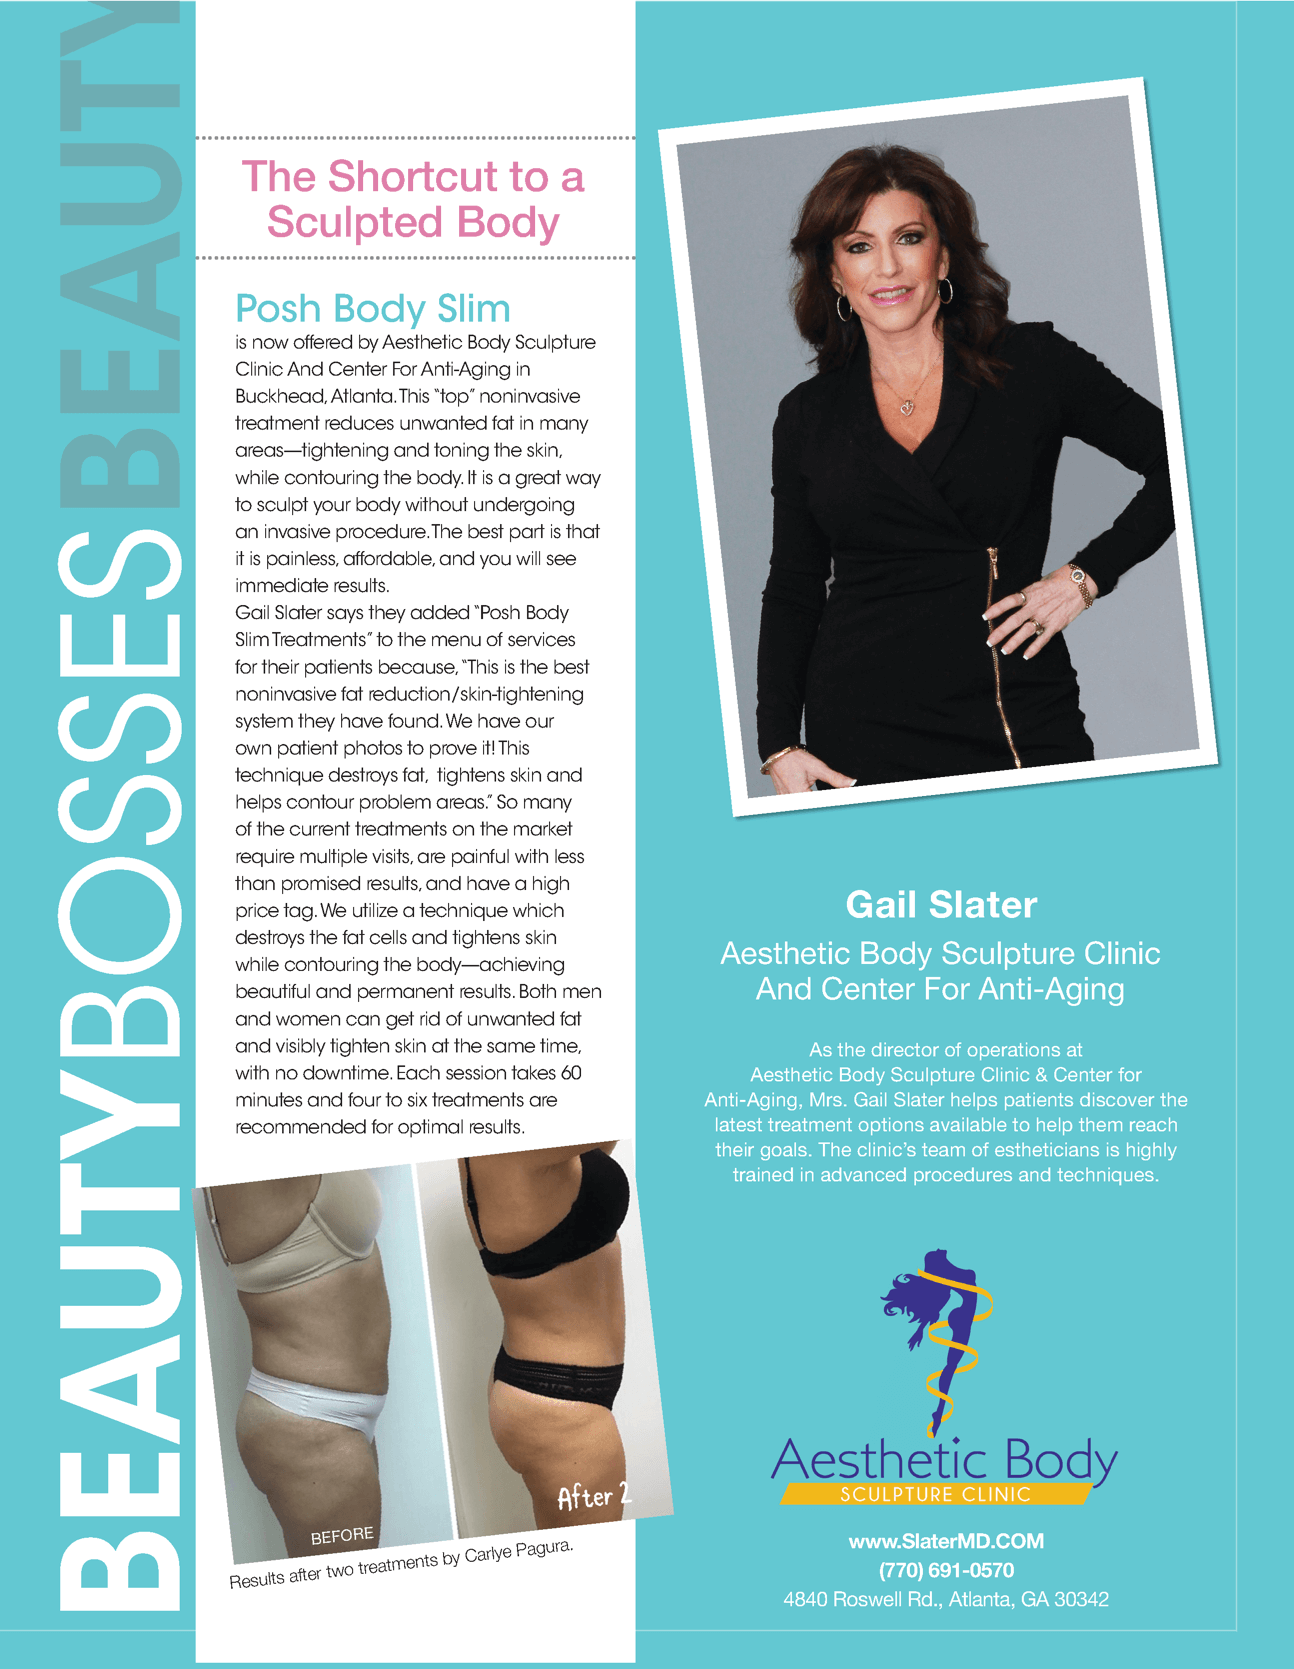 Beauty Bosses - Best Self Magazine Featured Clinic Director Gail Slater as one of 8 Beauty Bosses in Atlanta for June/July Issue 2019